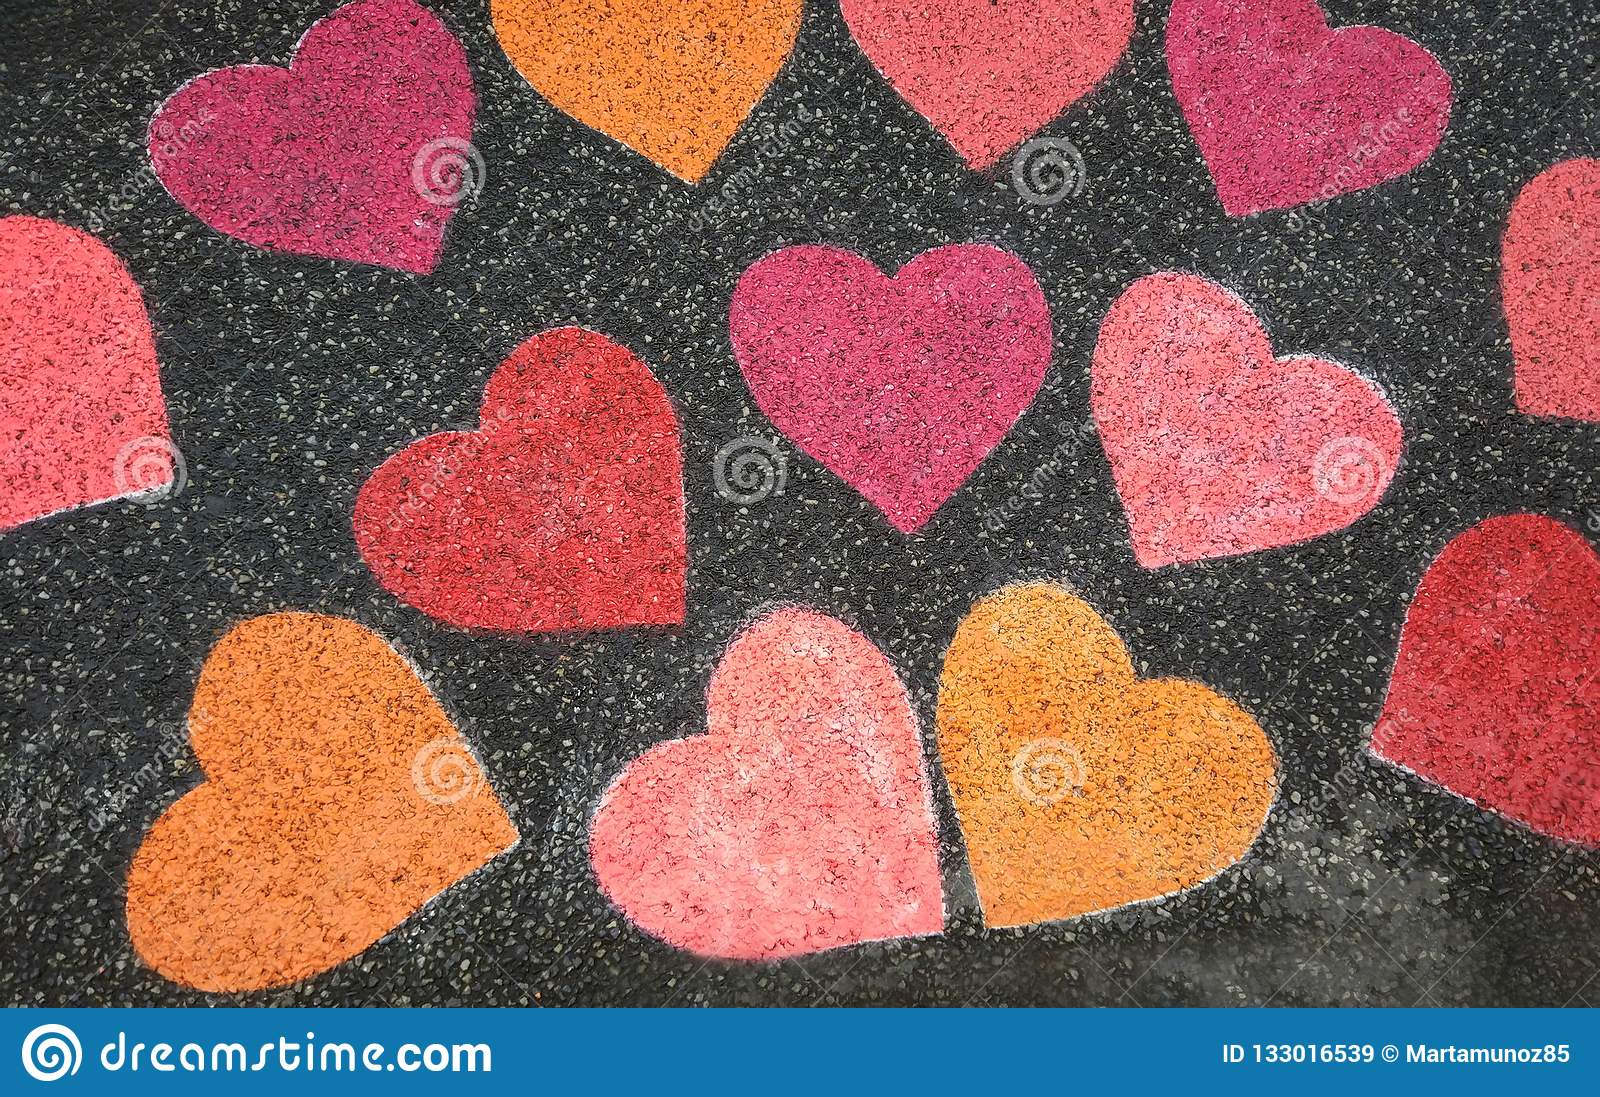 Hearts painted with colored chalk on the street